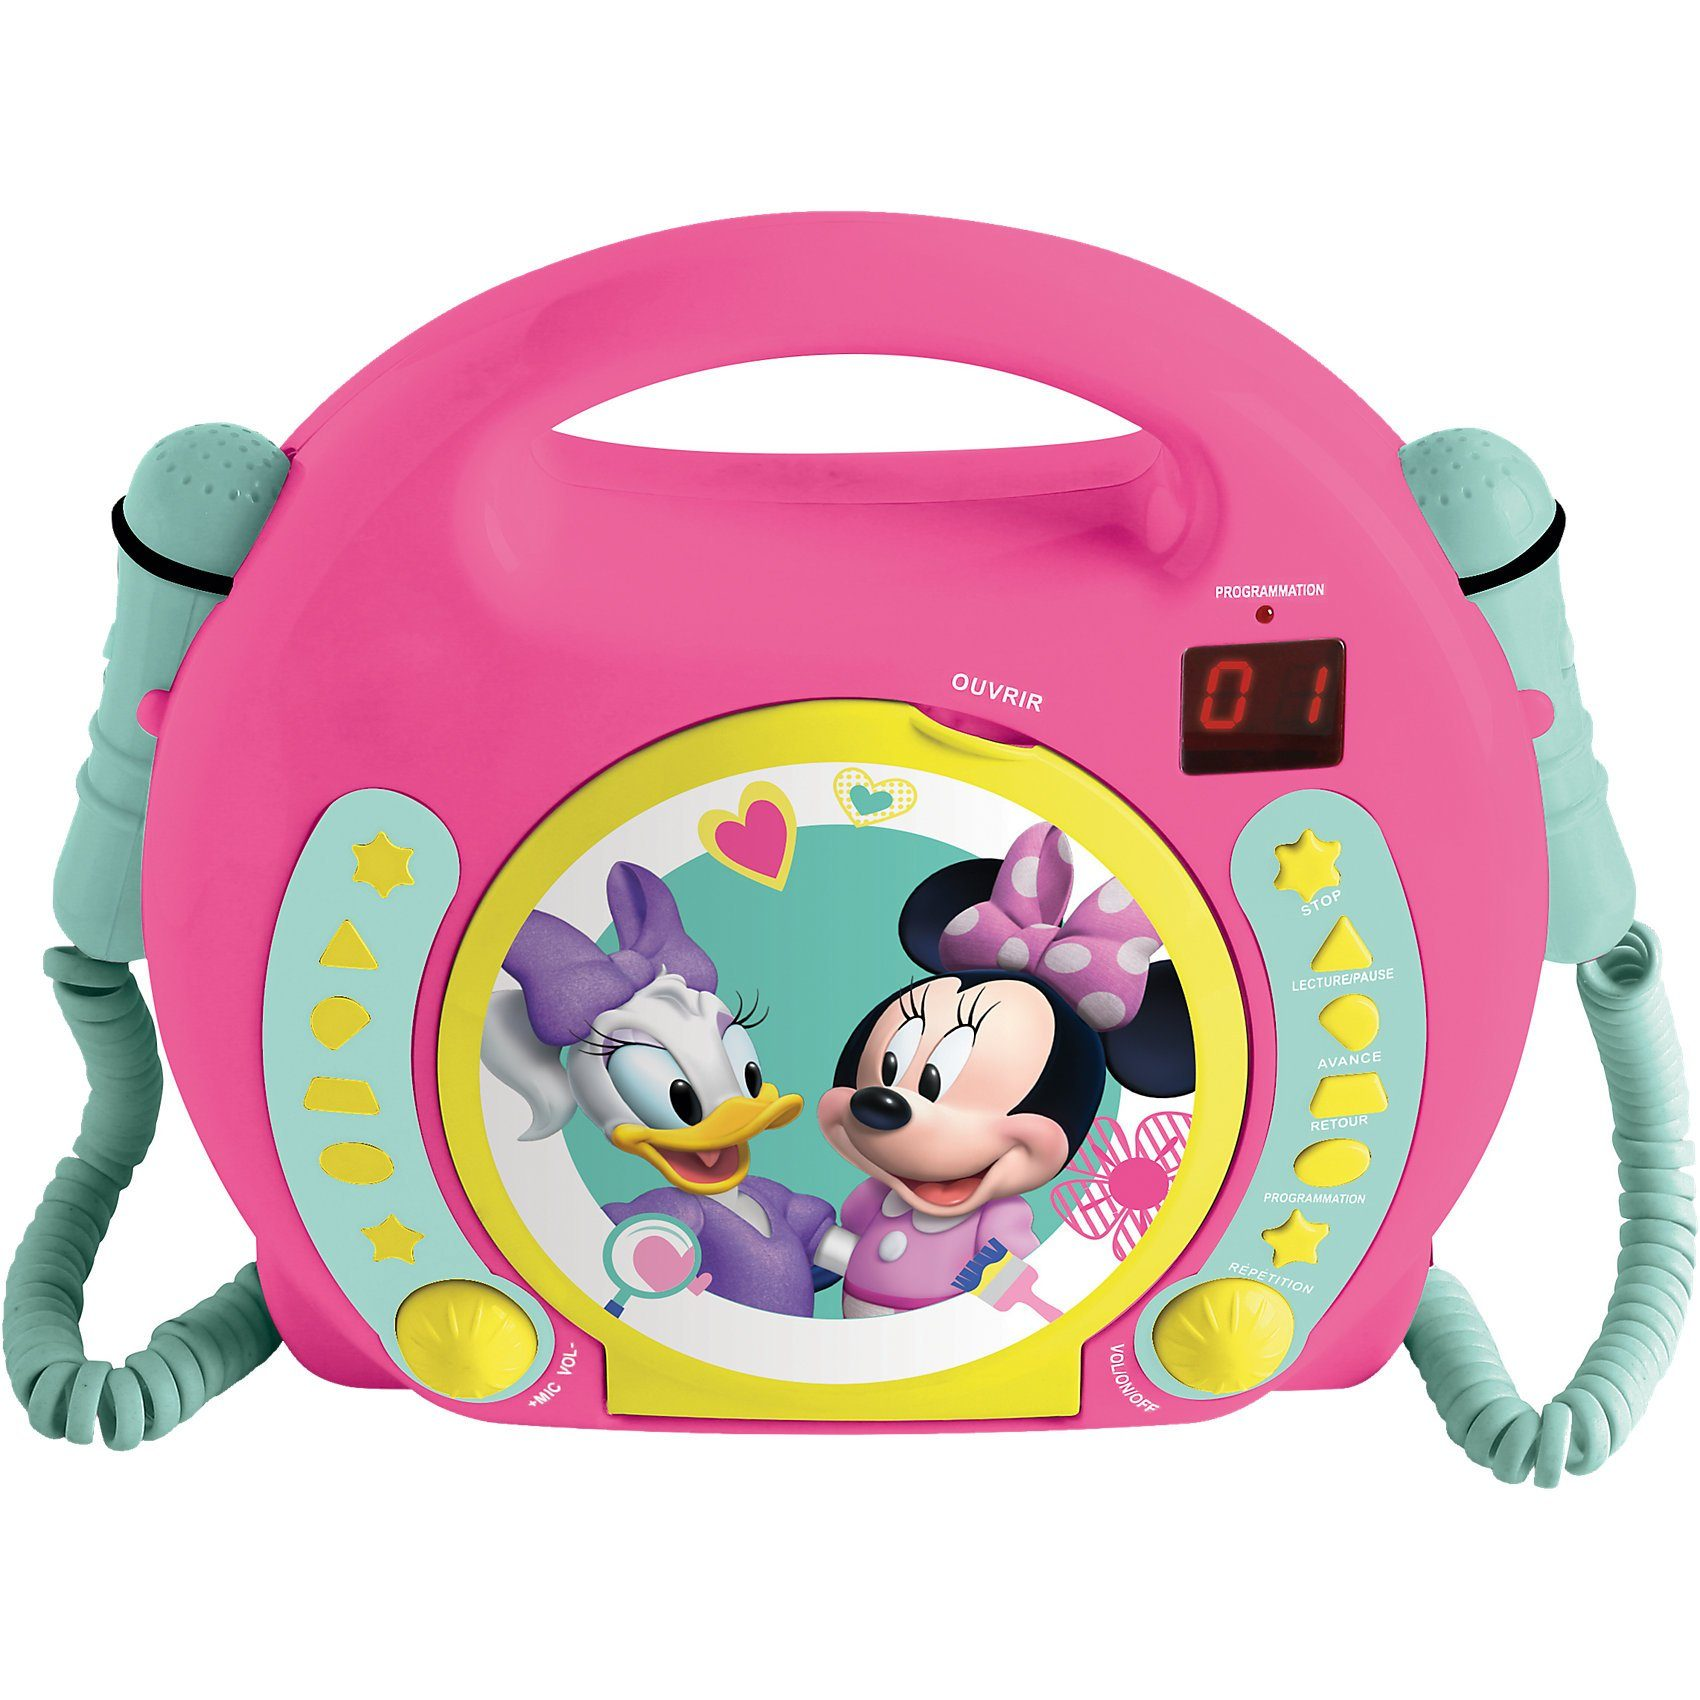 LEXIBOOK Minnie Kinder CD-Player mit 2 Mikrofonen